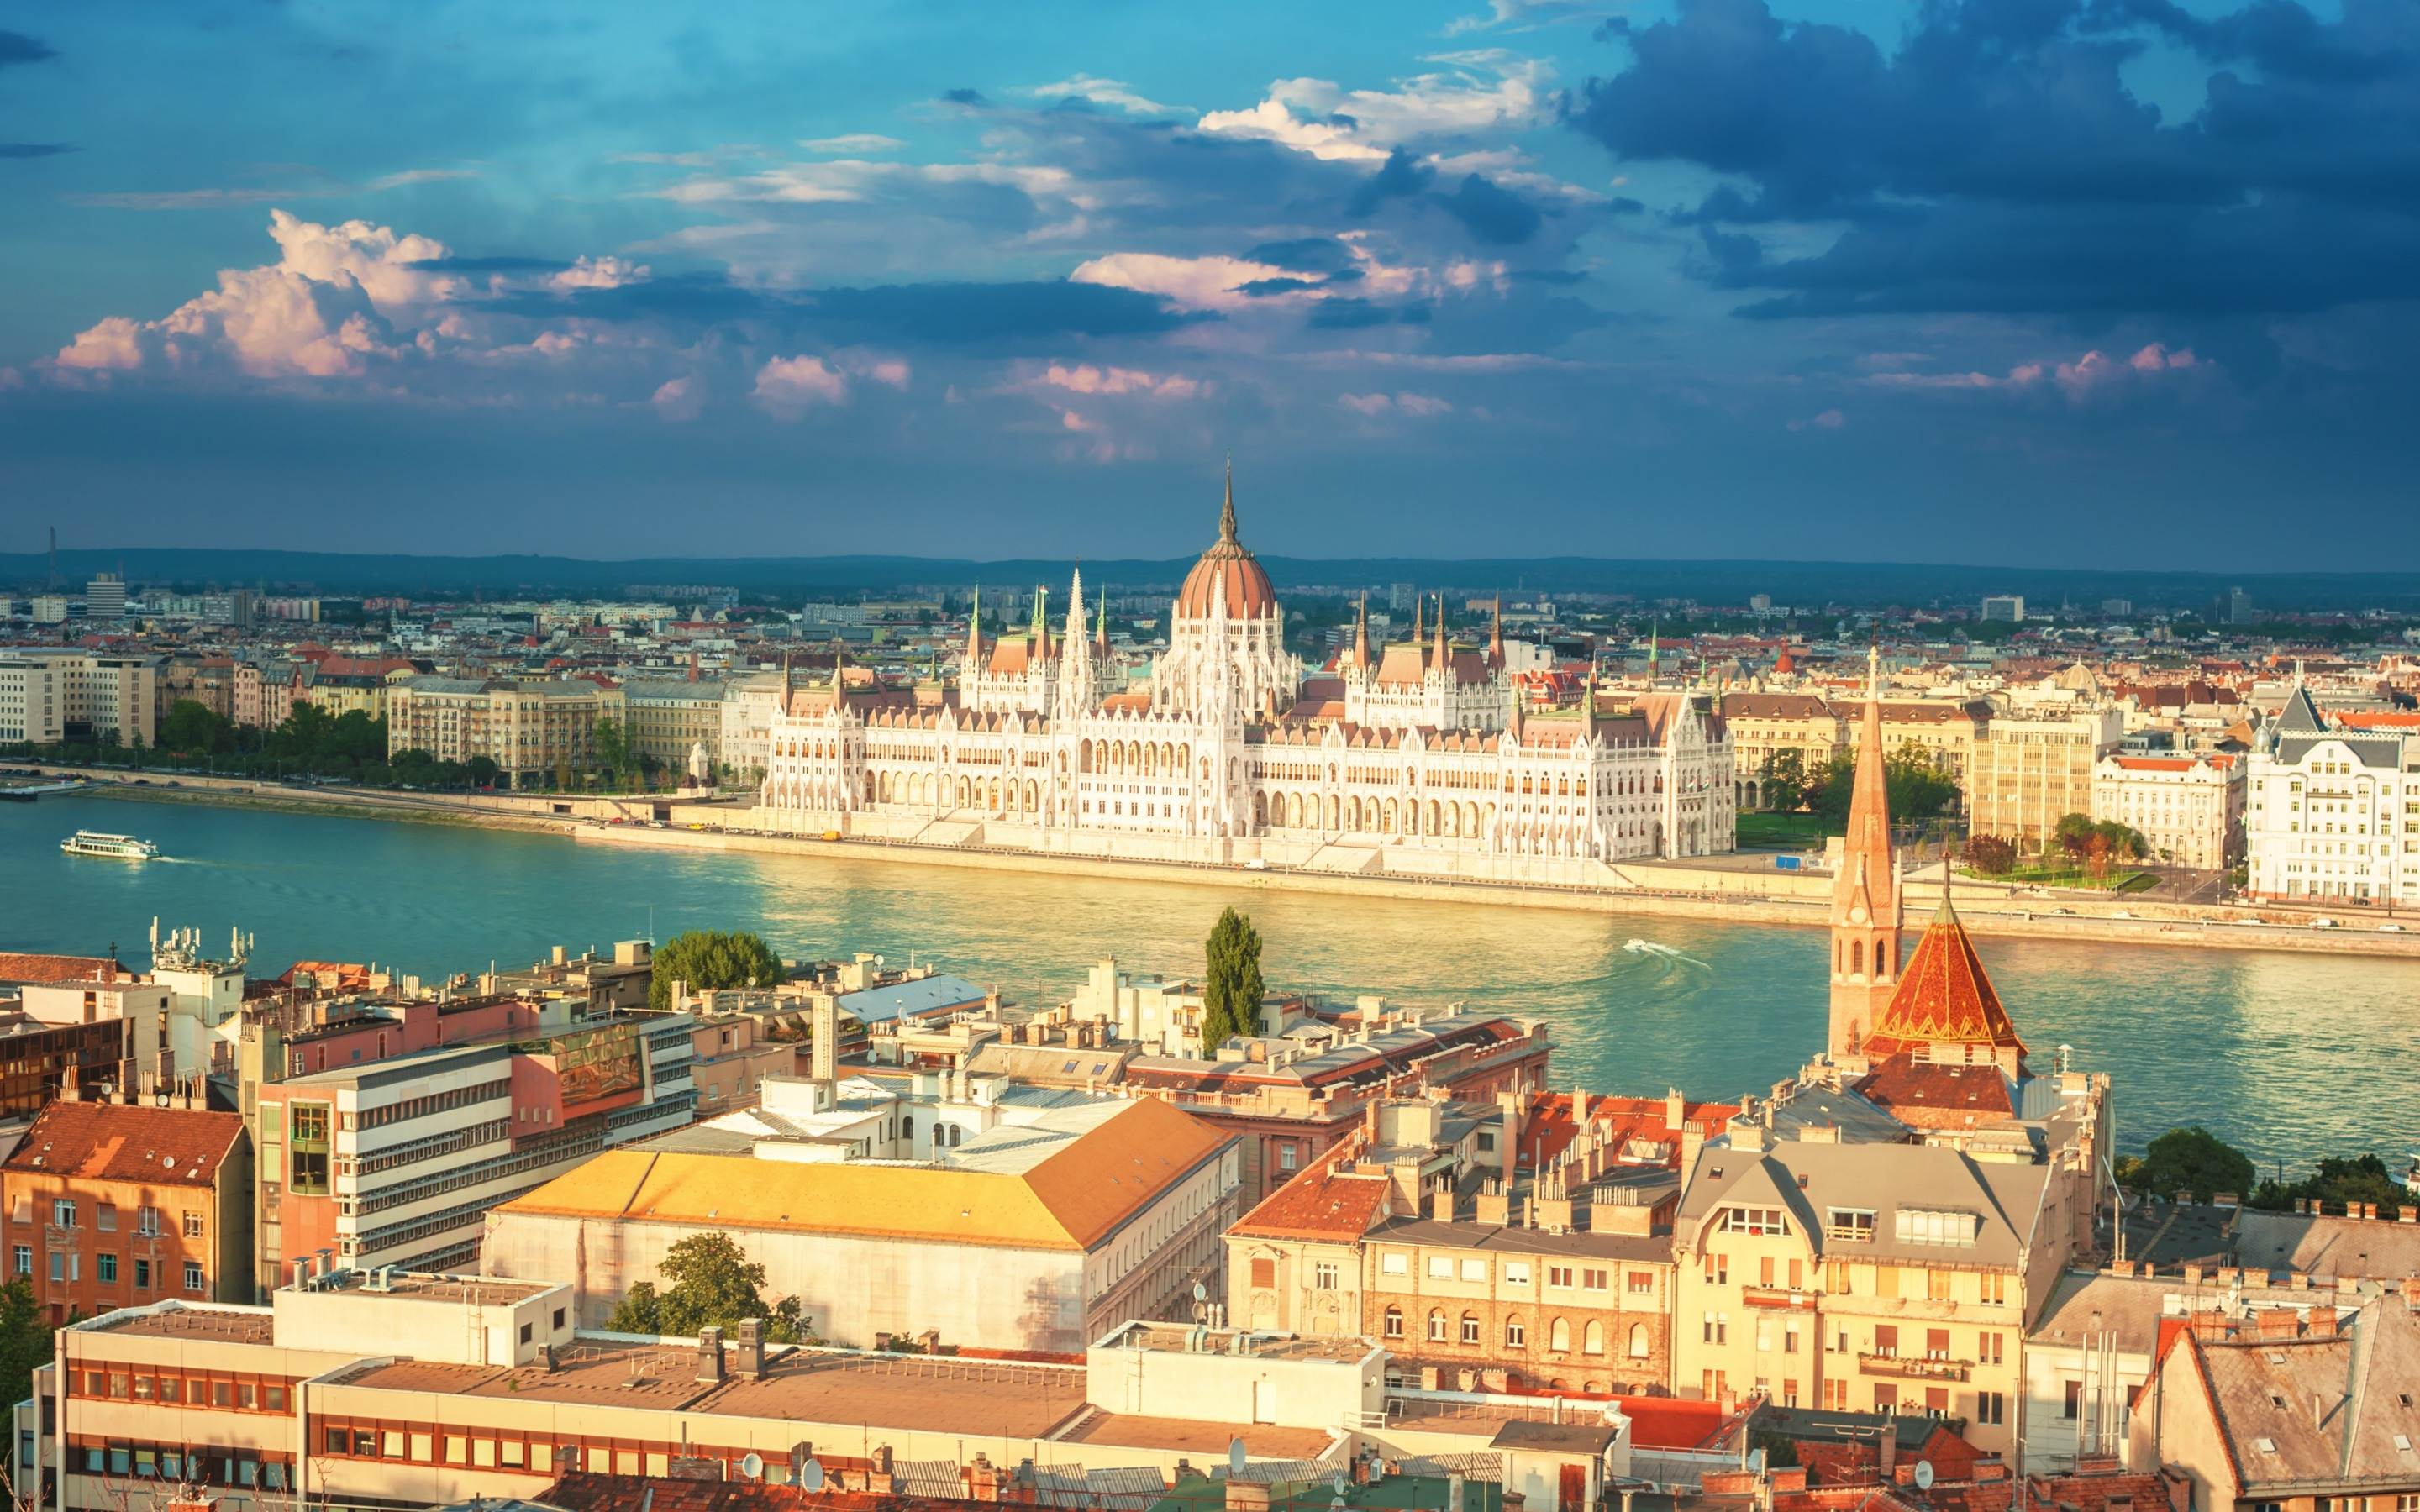 General 2880x1800 architecture building city cityscape clouds river ship Budapest Hungary Hungarian Parliament Building old building church Gothic architecture Donau rooftops capital